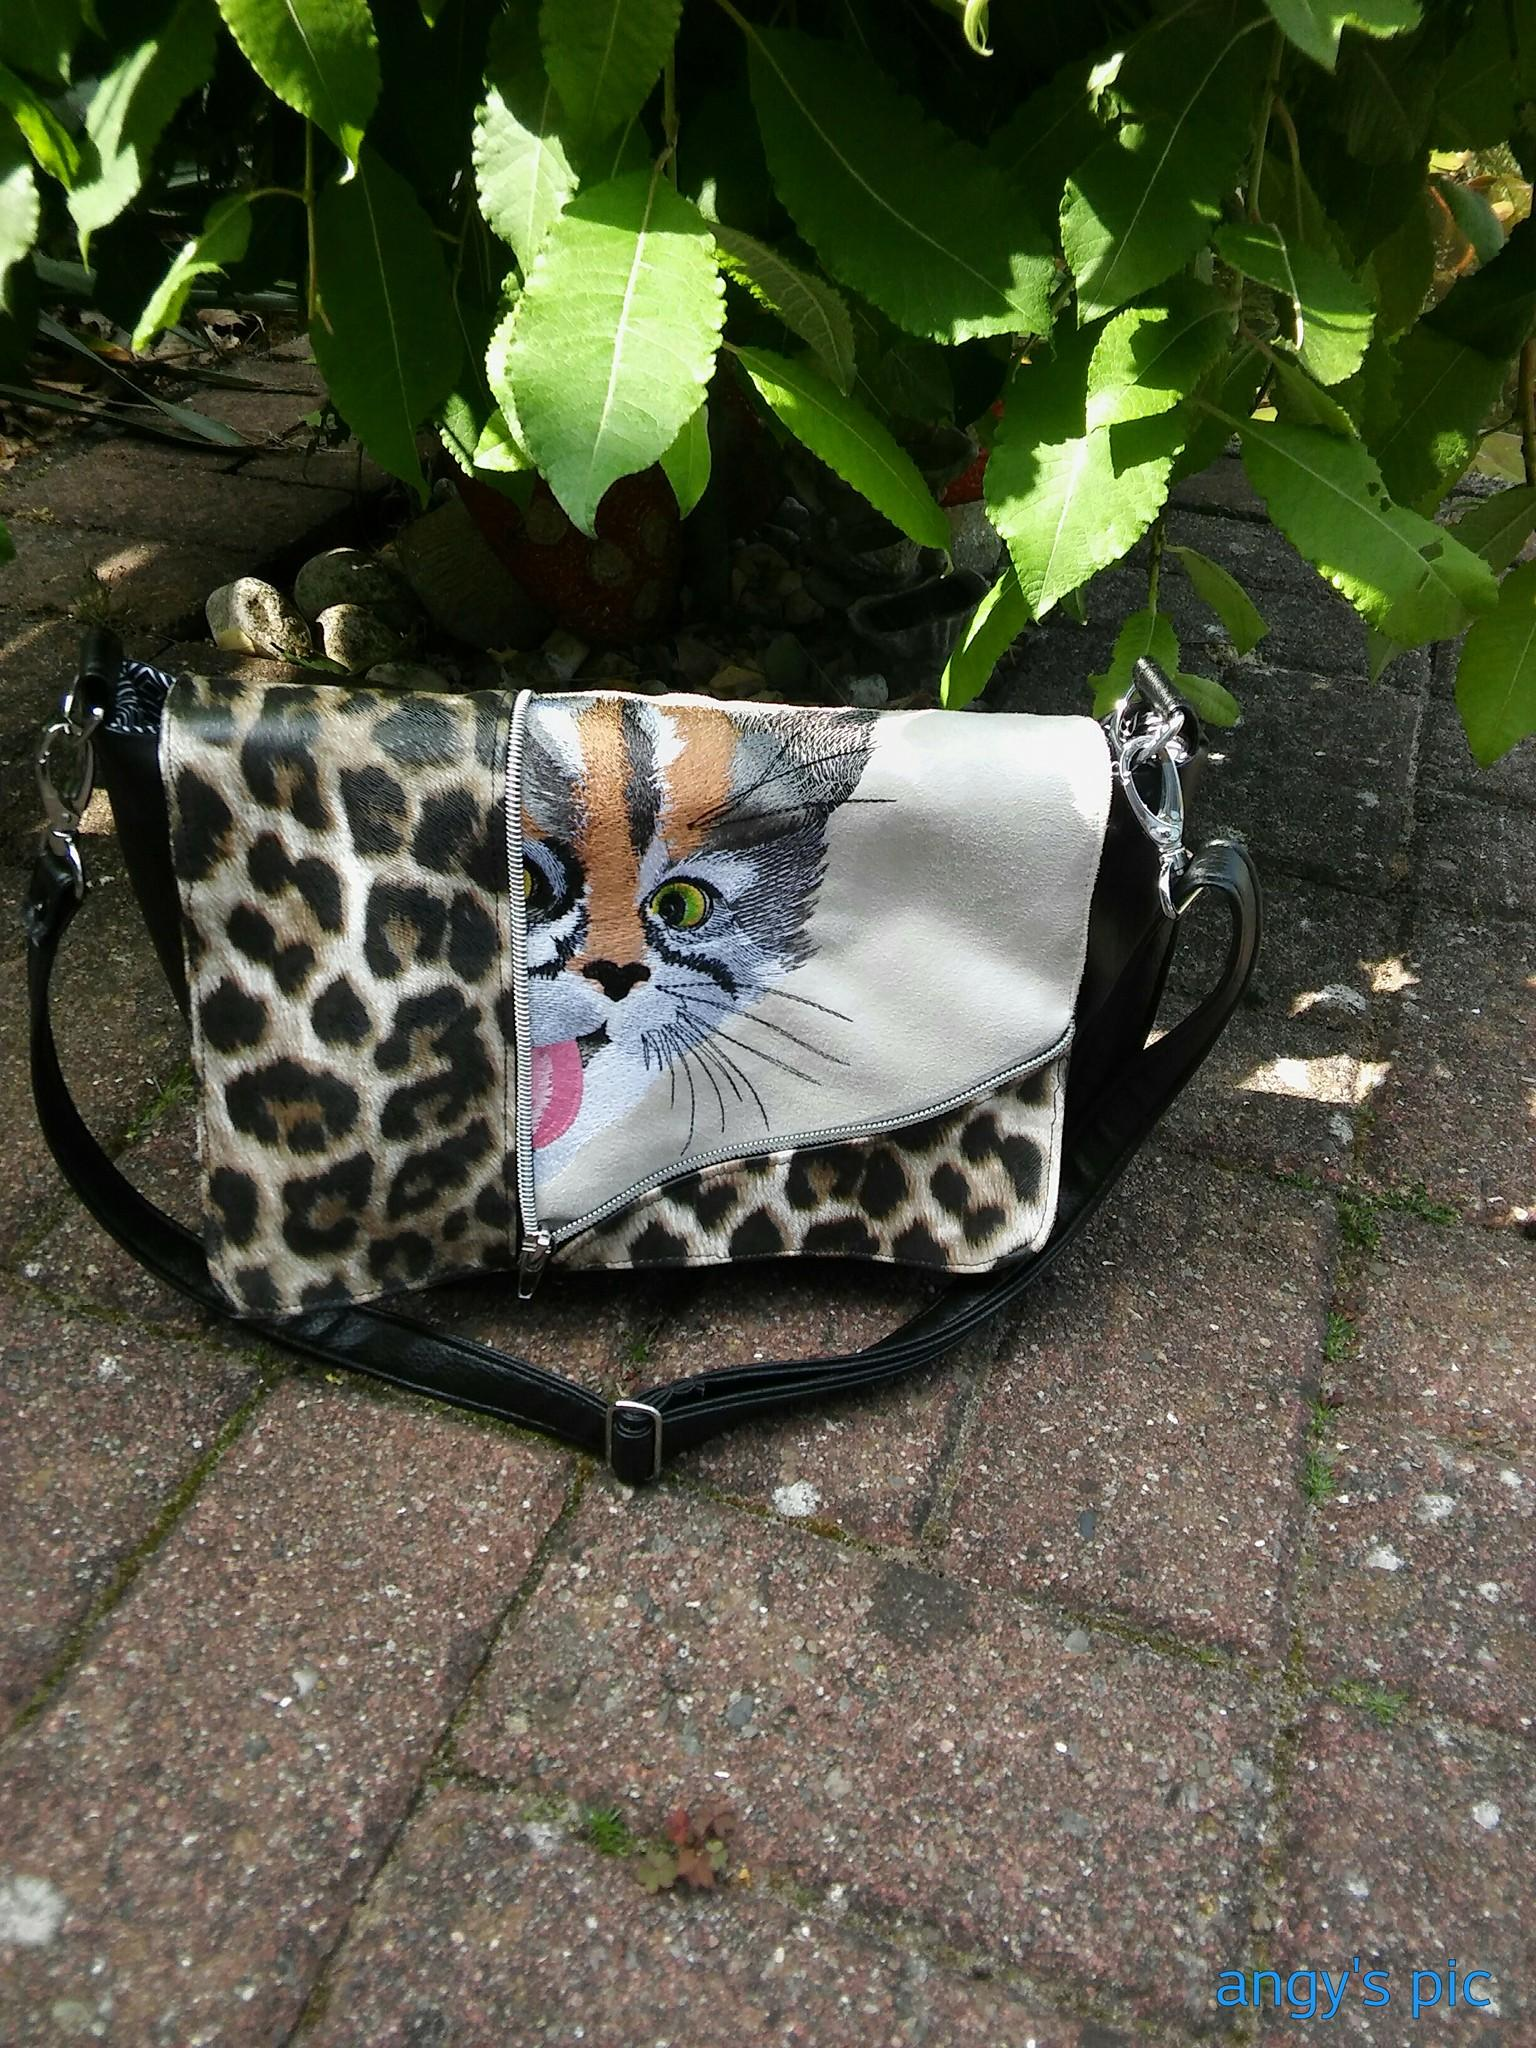 Embroidered bag with curious kitty free design